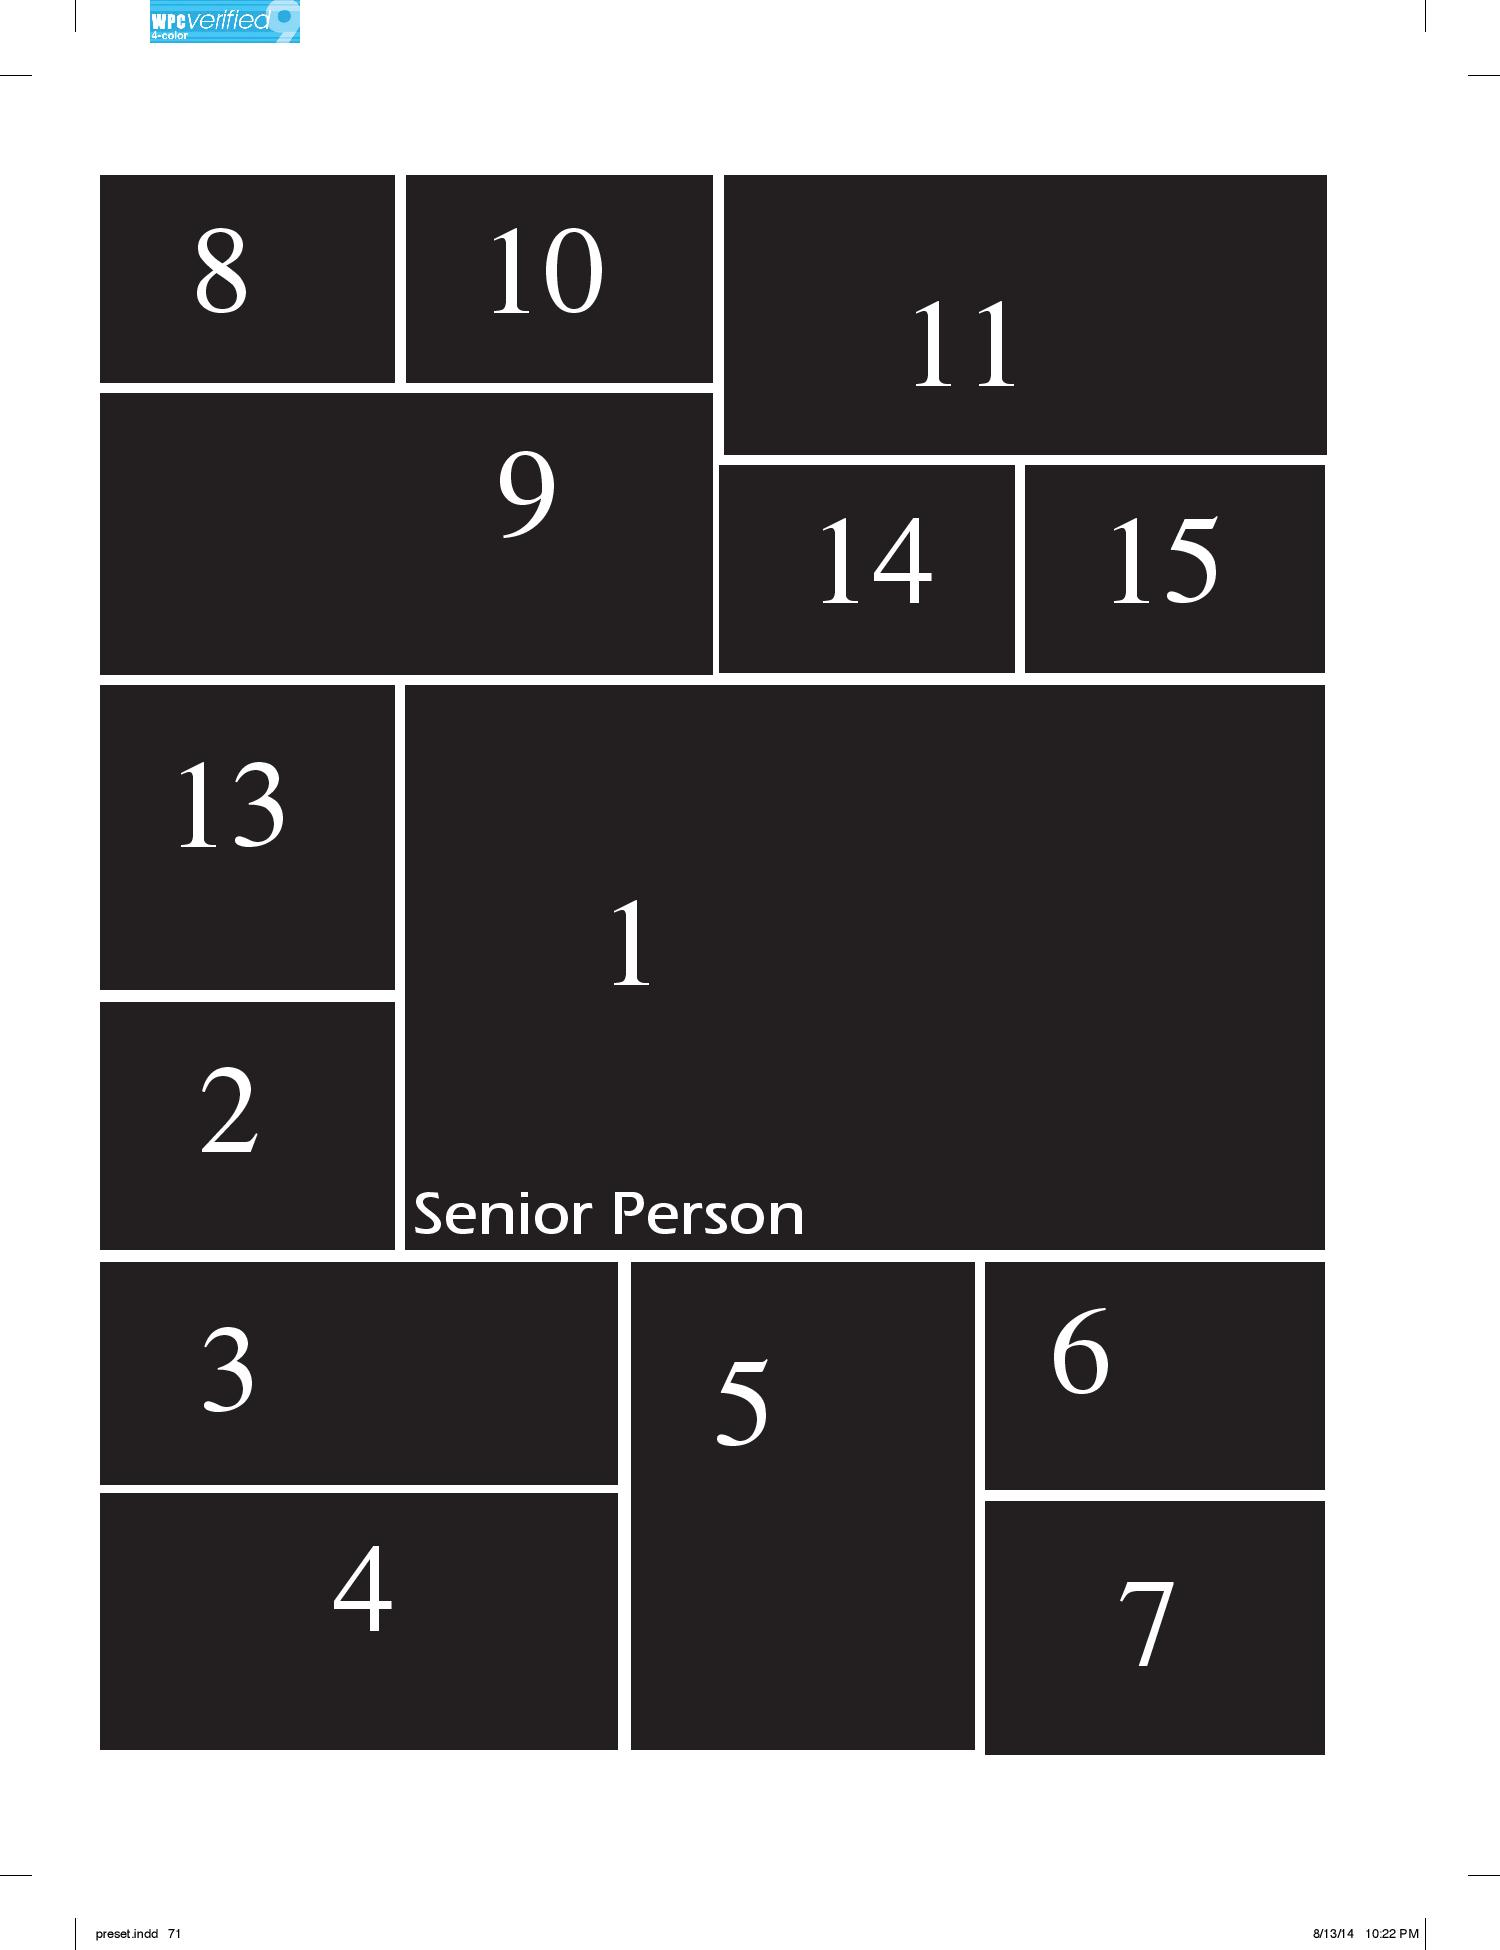 Senior Page Information Amp Layout Font Options The View